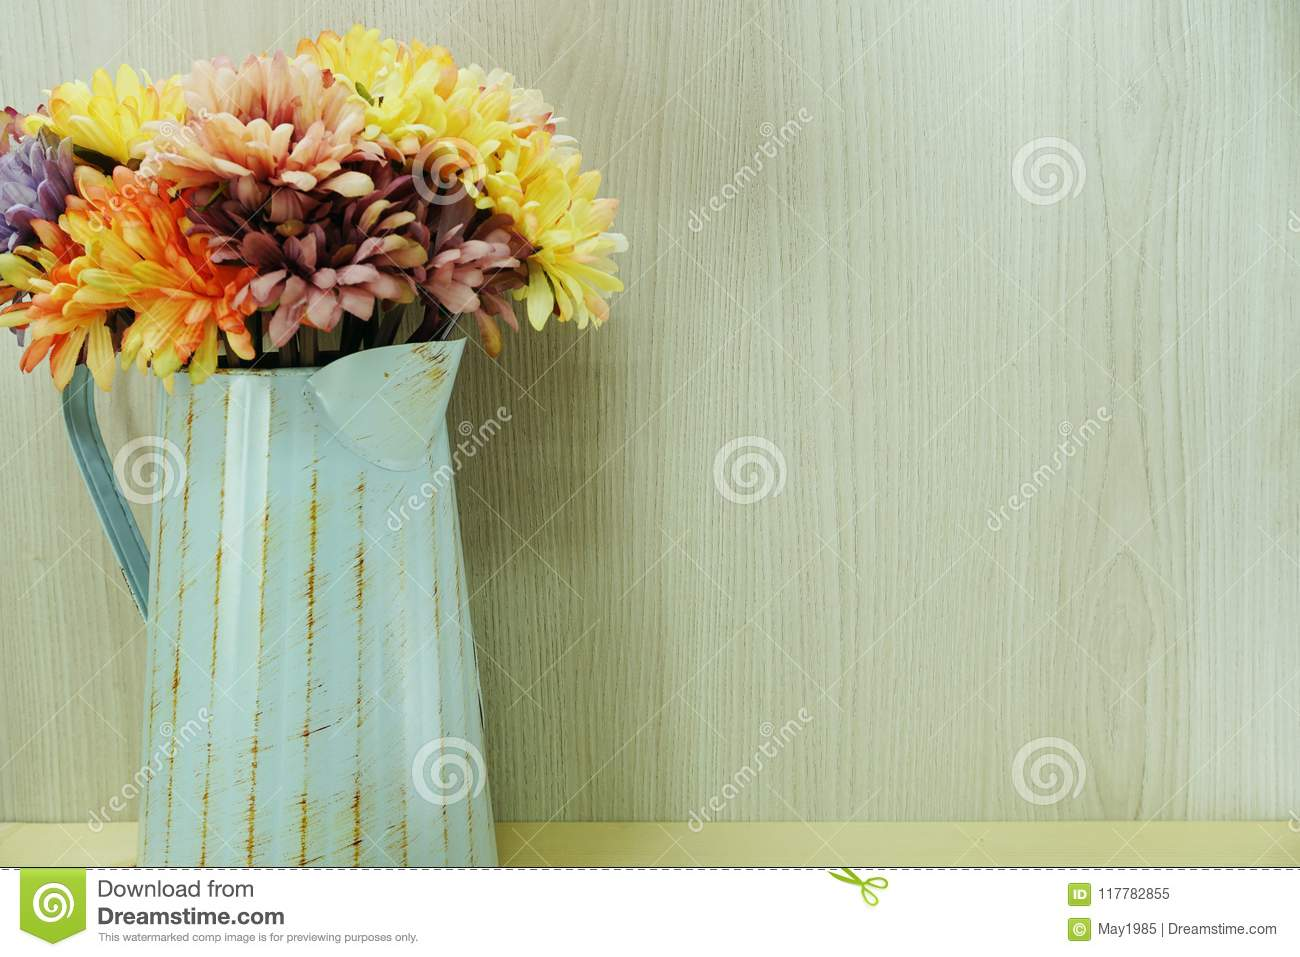 Colorful Artificial Daisy Flower Home Decor Stock Image Image Of